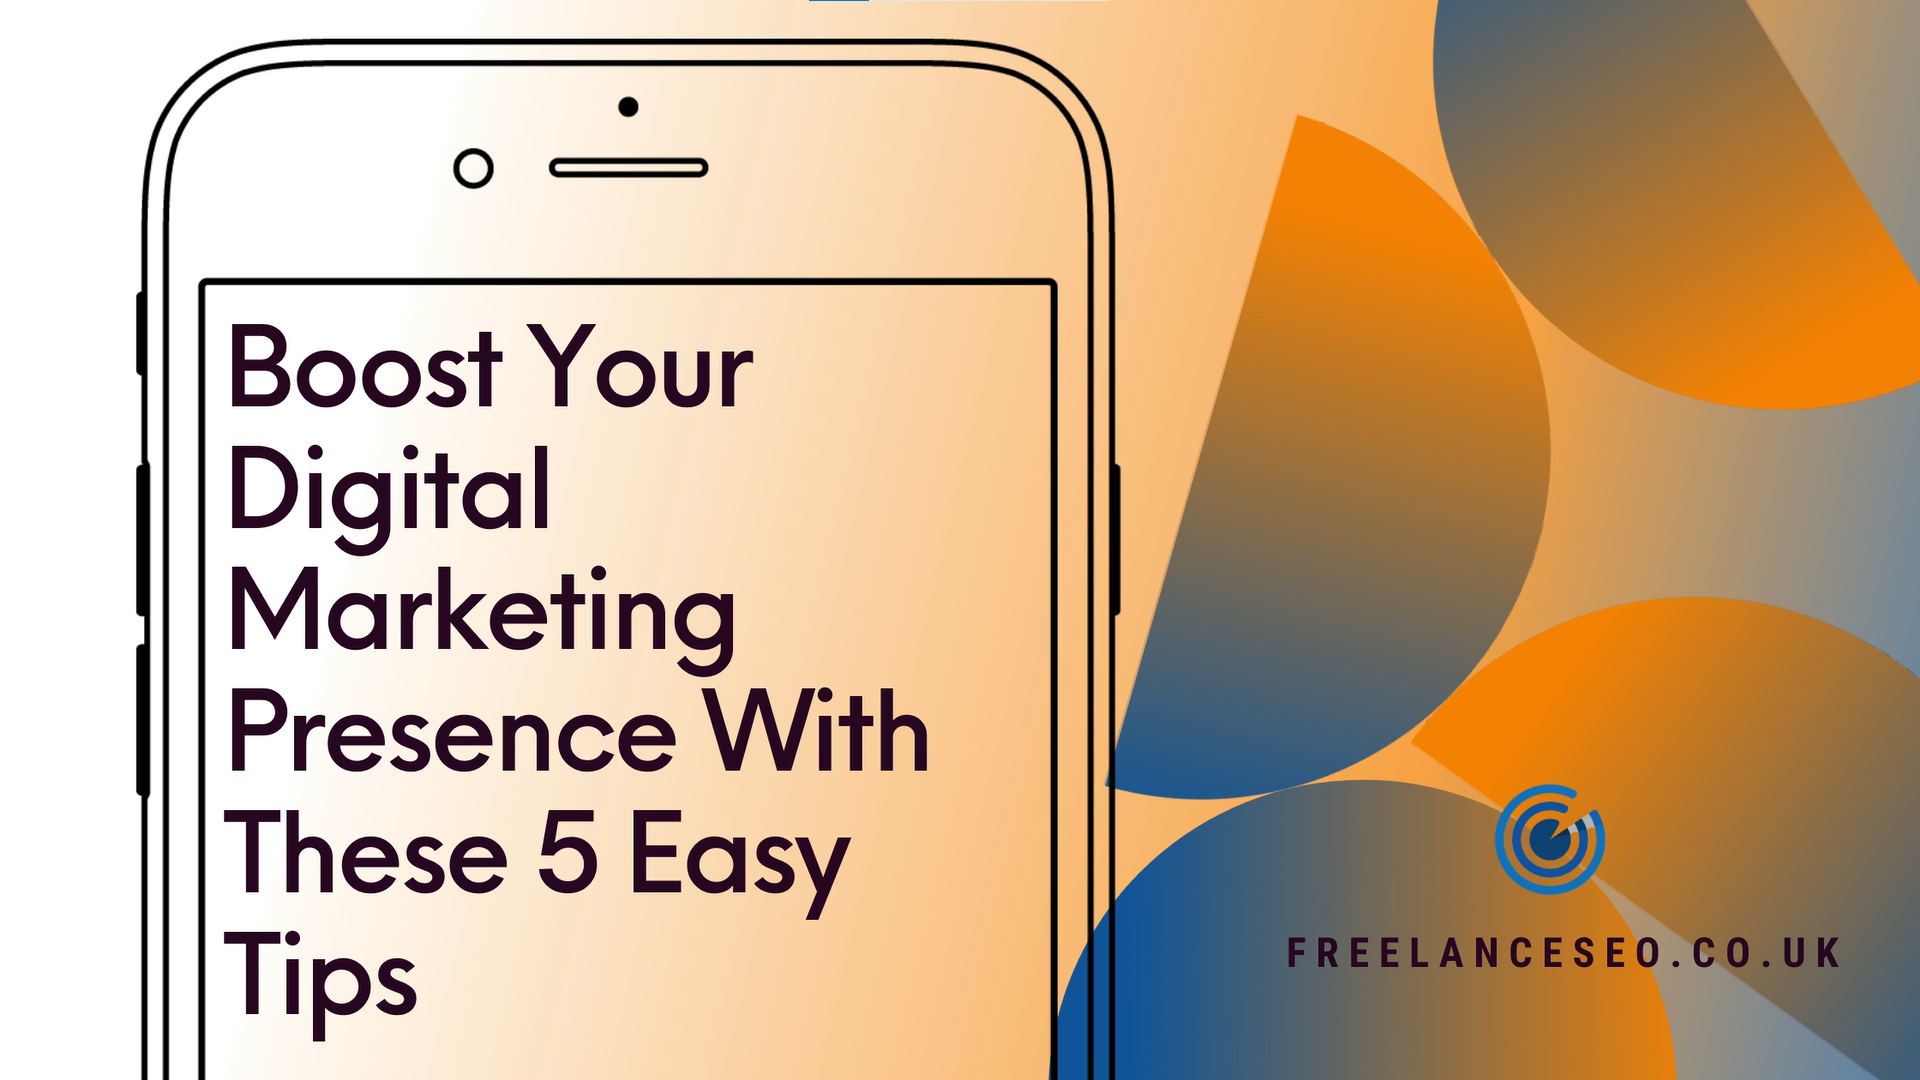 Boost your digital marketing presence with these 5 easy tips